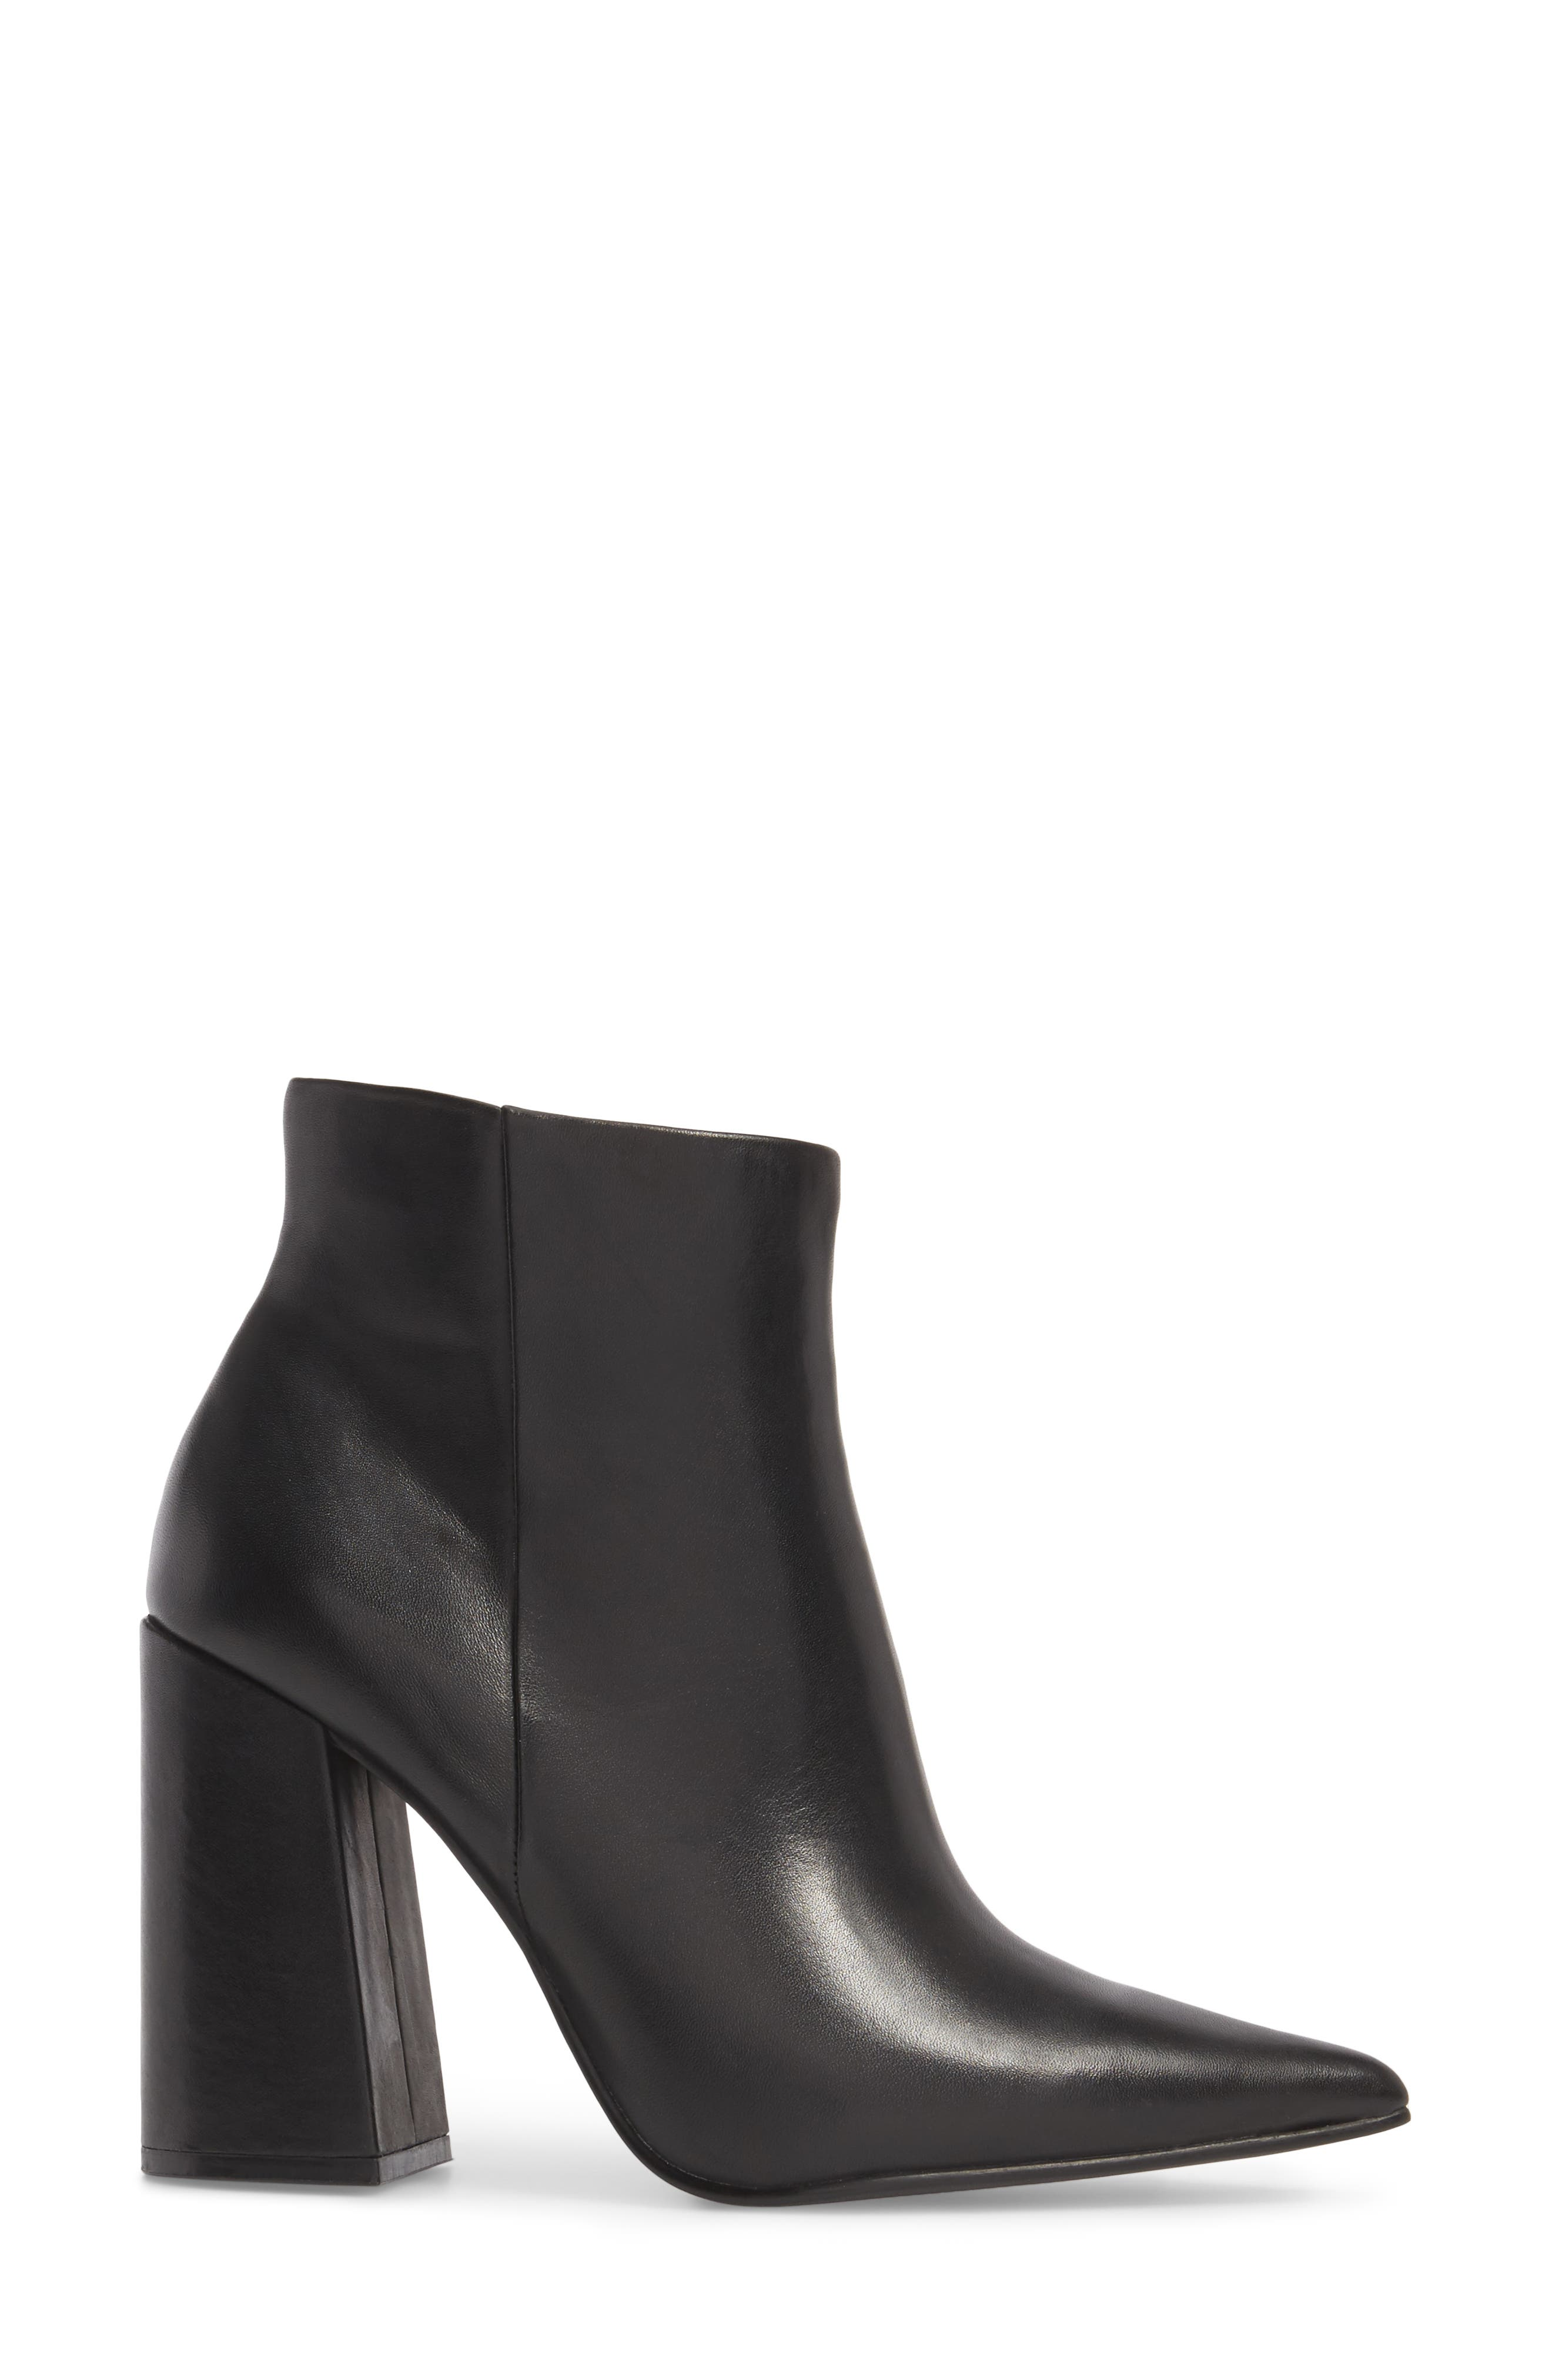 Justify Flared Heel Bootie,                             Alternate thumbnail 3, color,                             001